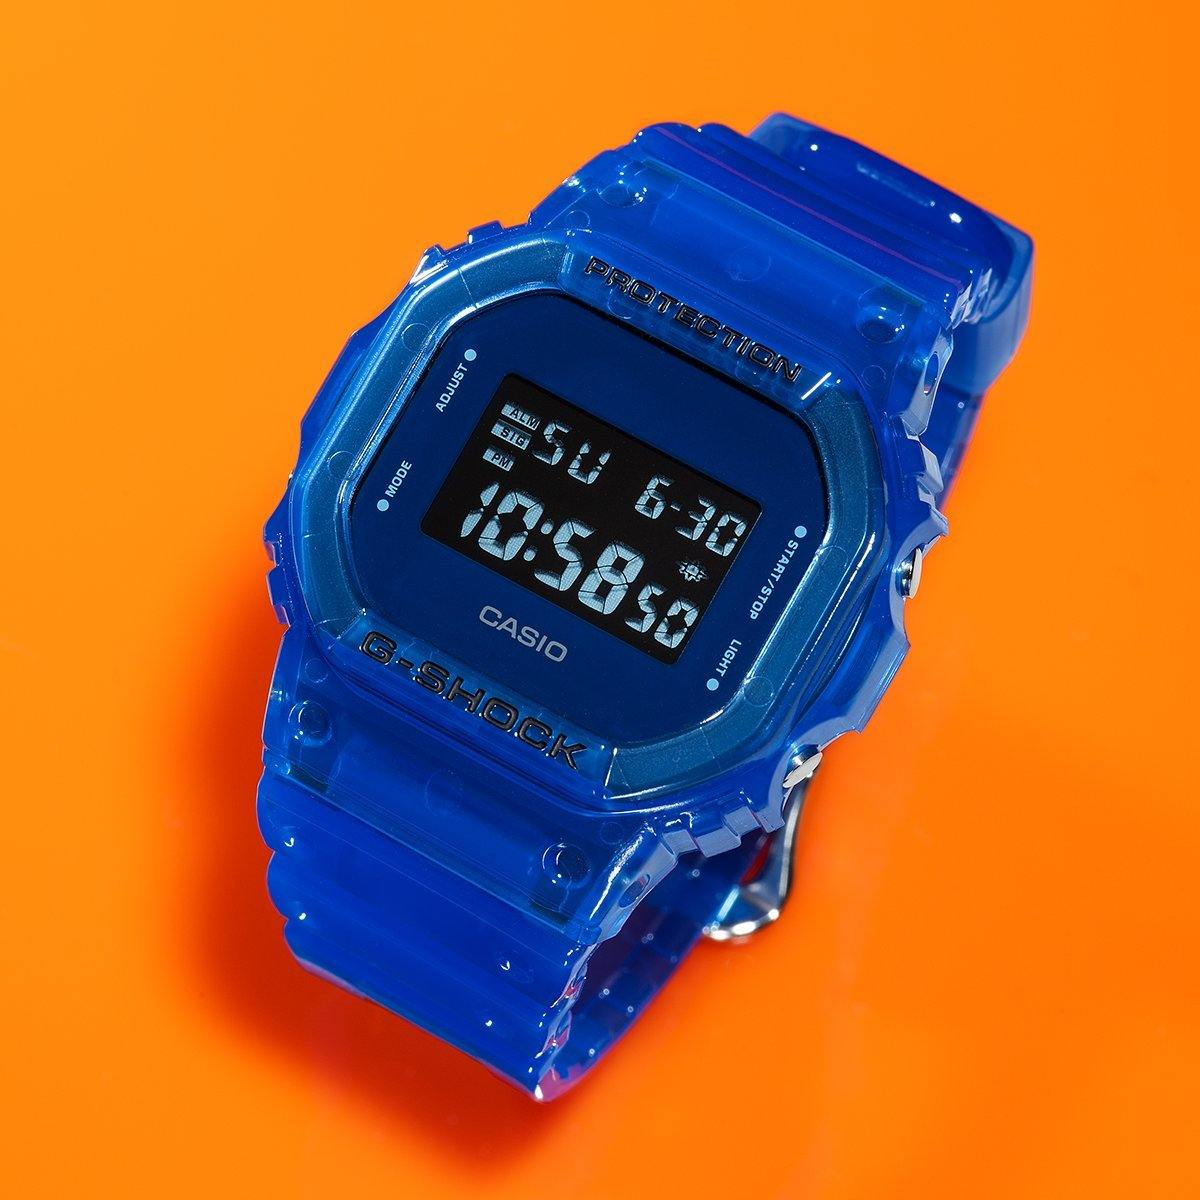 Casio NLA G-SHOCK Digital 90'S DW5600SB-2D - Blue Case & Band